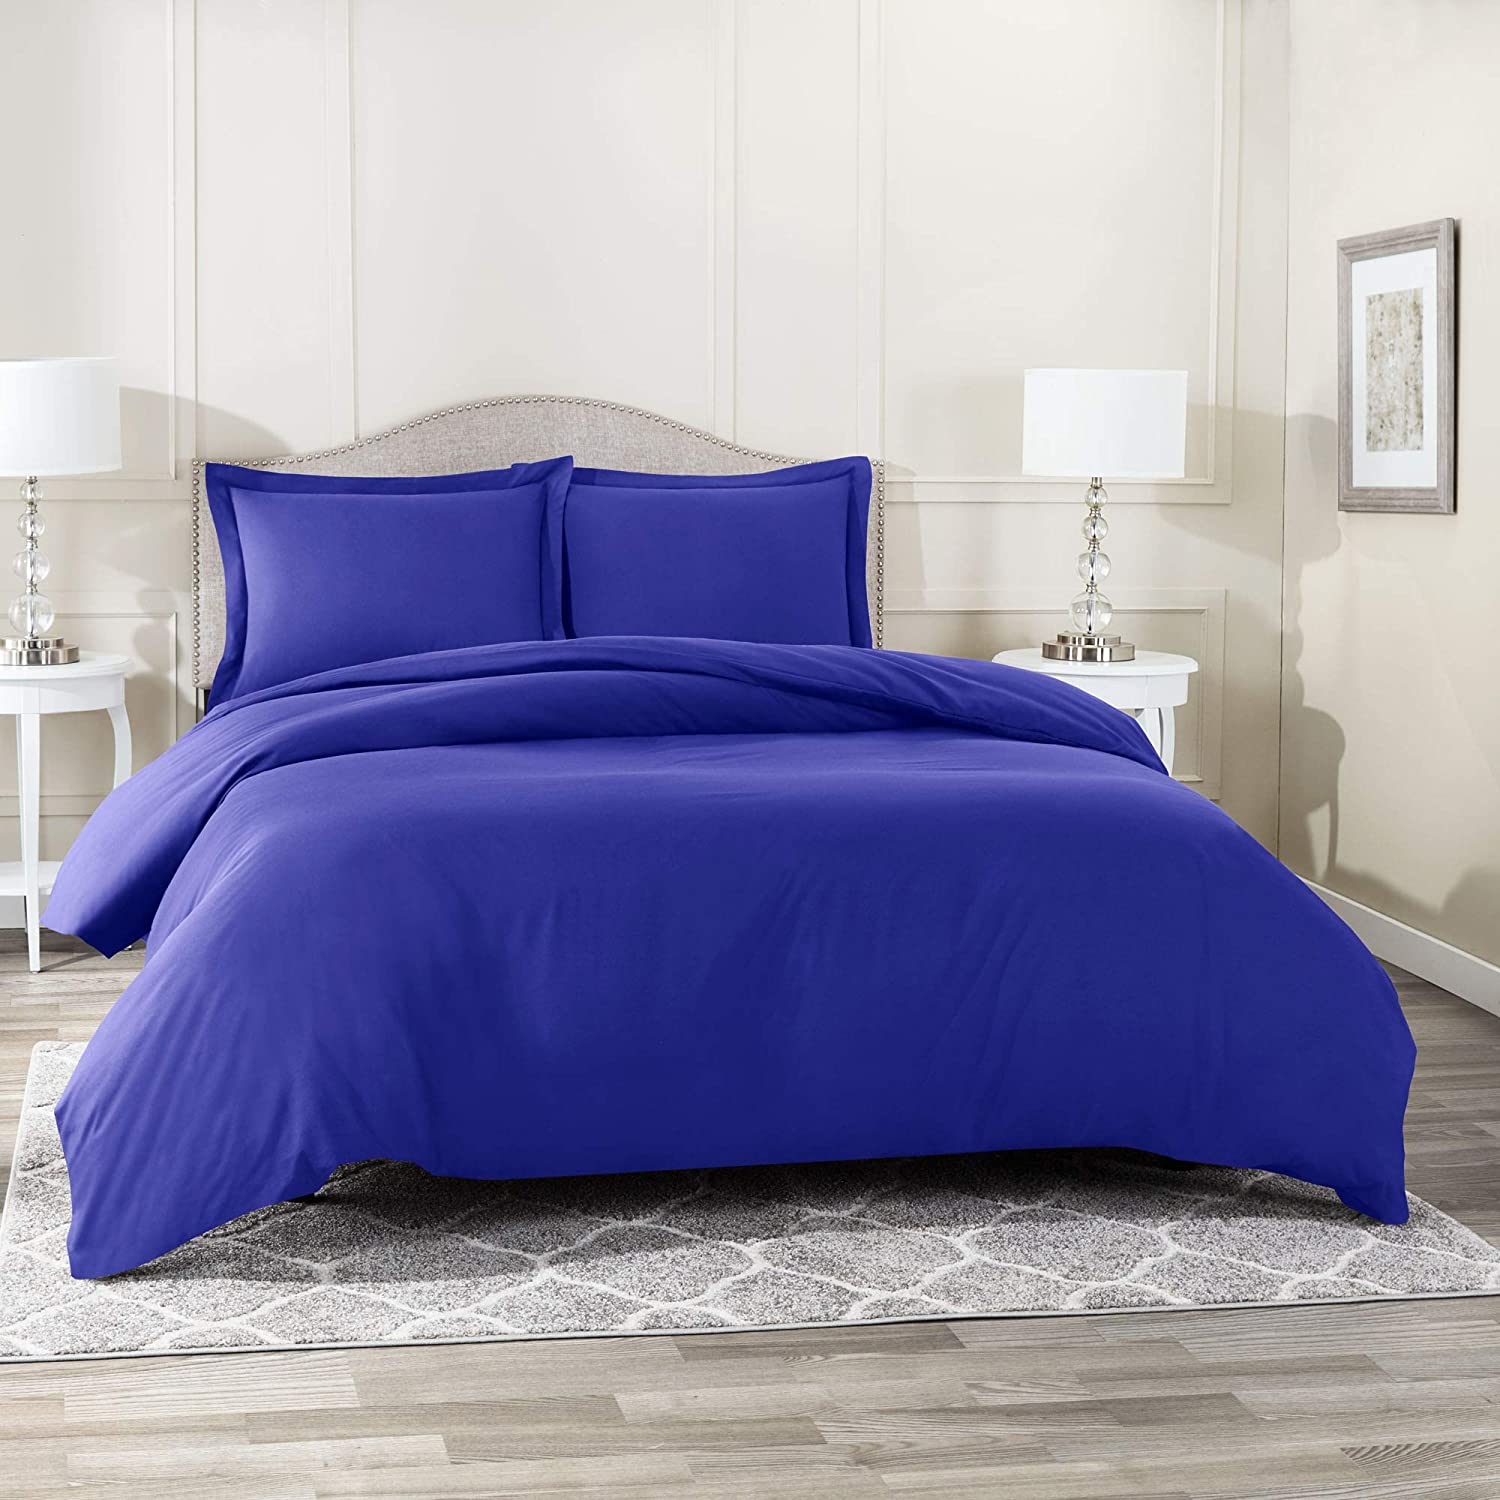 """Nestl Bedding Duvet Cover 2 Piece Set – Ultra Soft Double Brushed Microfiber Hotel Collection – Comforter Cover with Button Closure and 1 Pillow Sham, Royal Blue - Twin (Single) 68""""x90"""""""